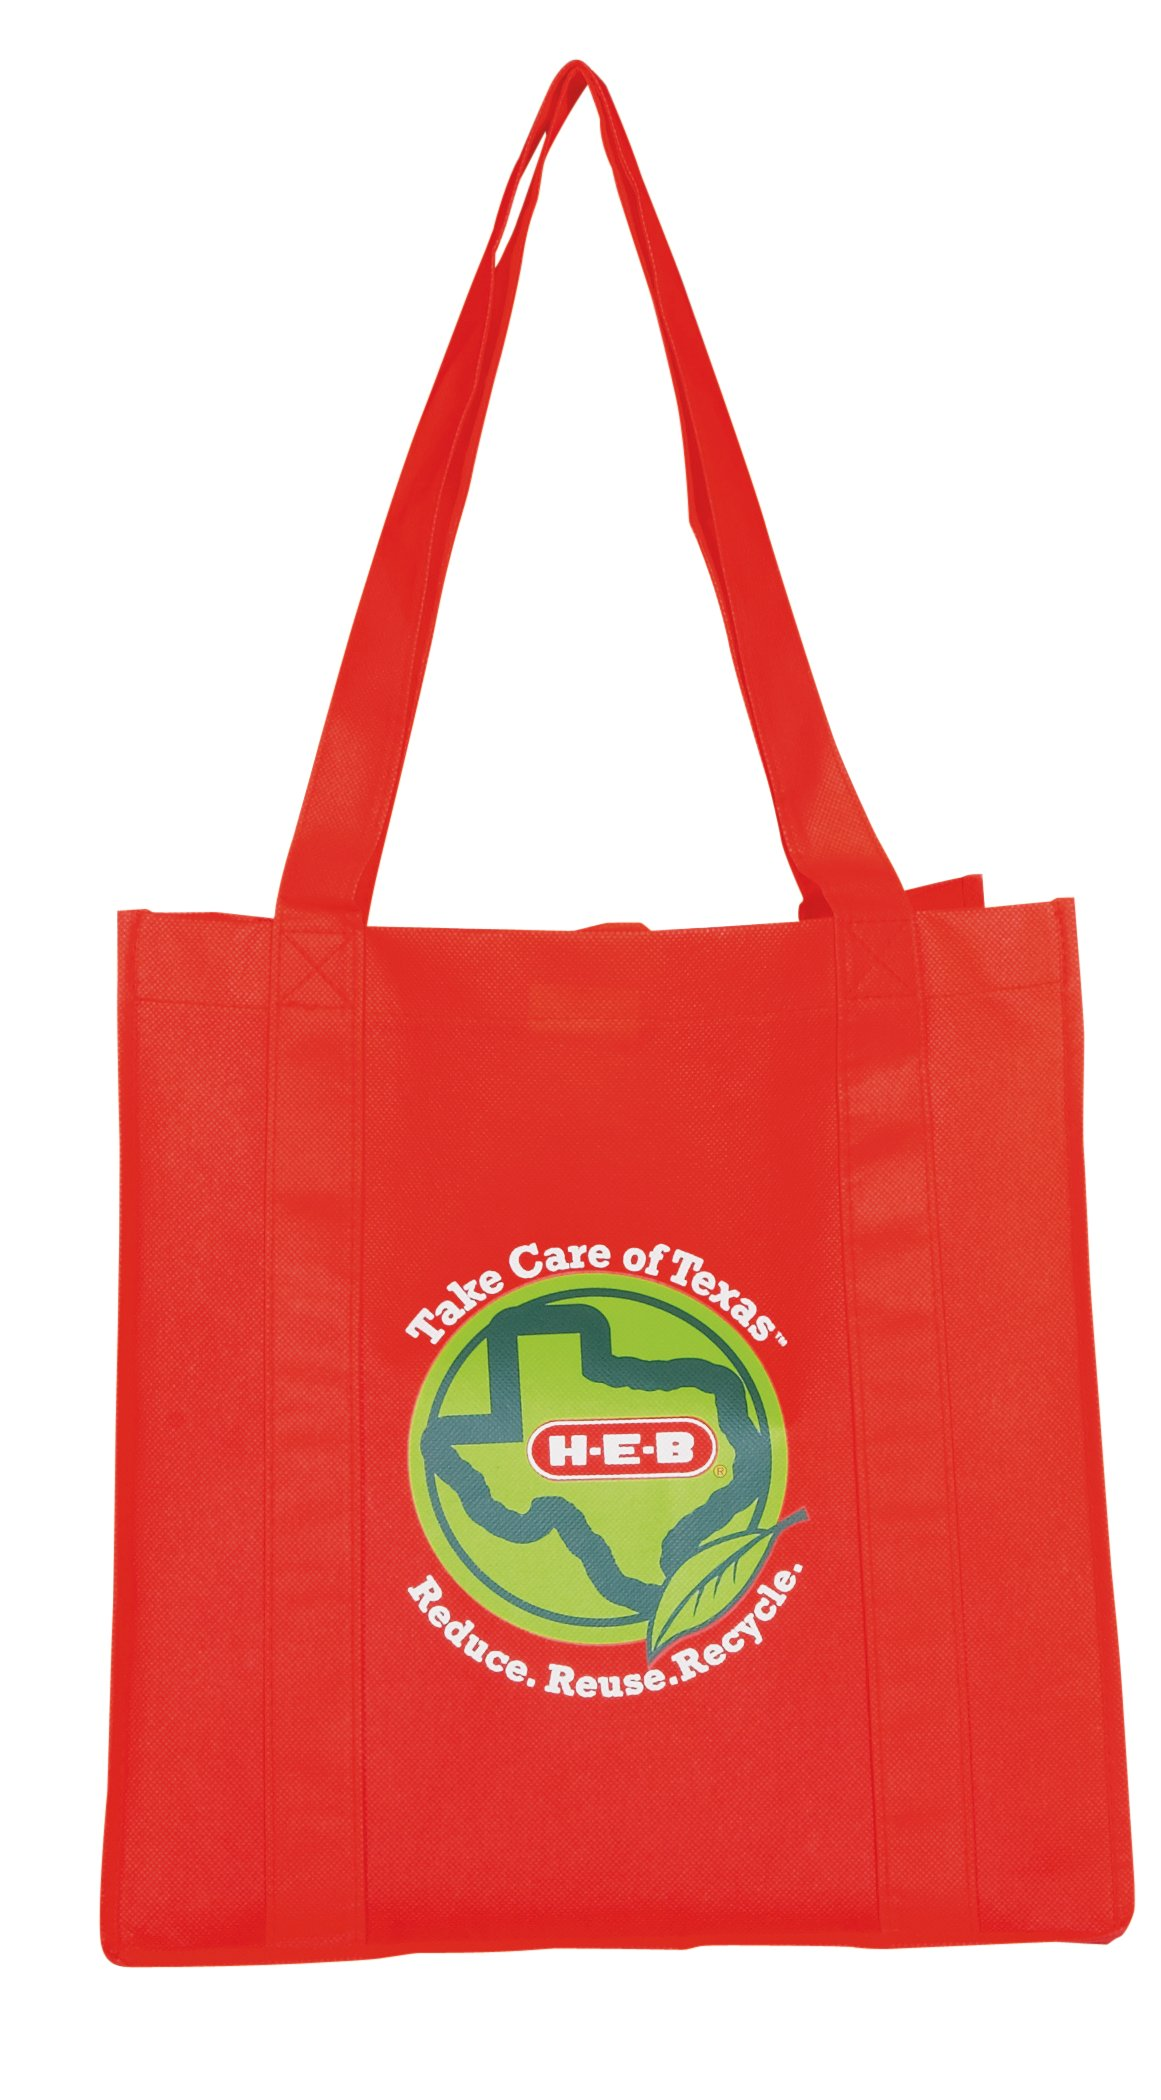 kitchen storage and organization shop heb everyday low prices online h e b reusable shopping bag red